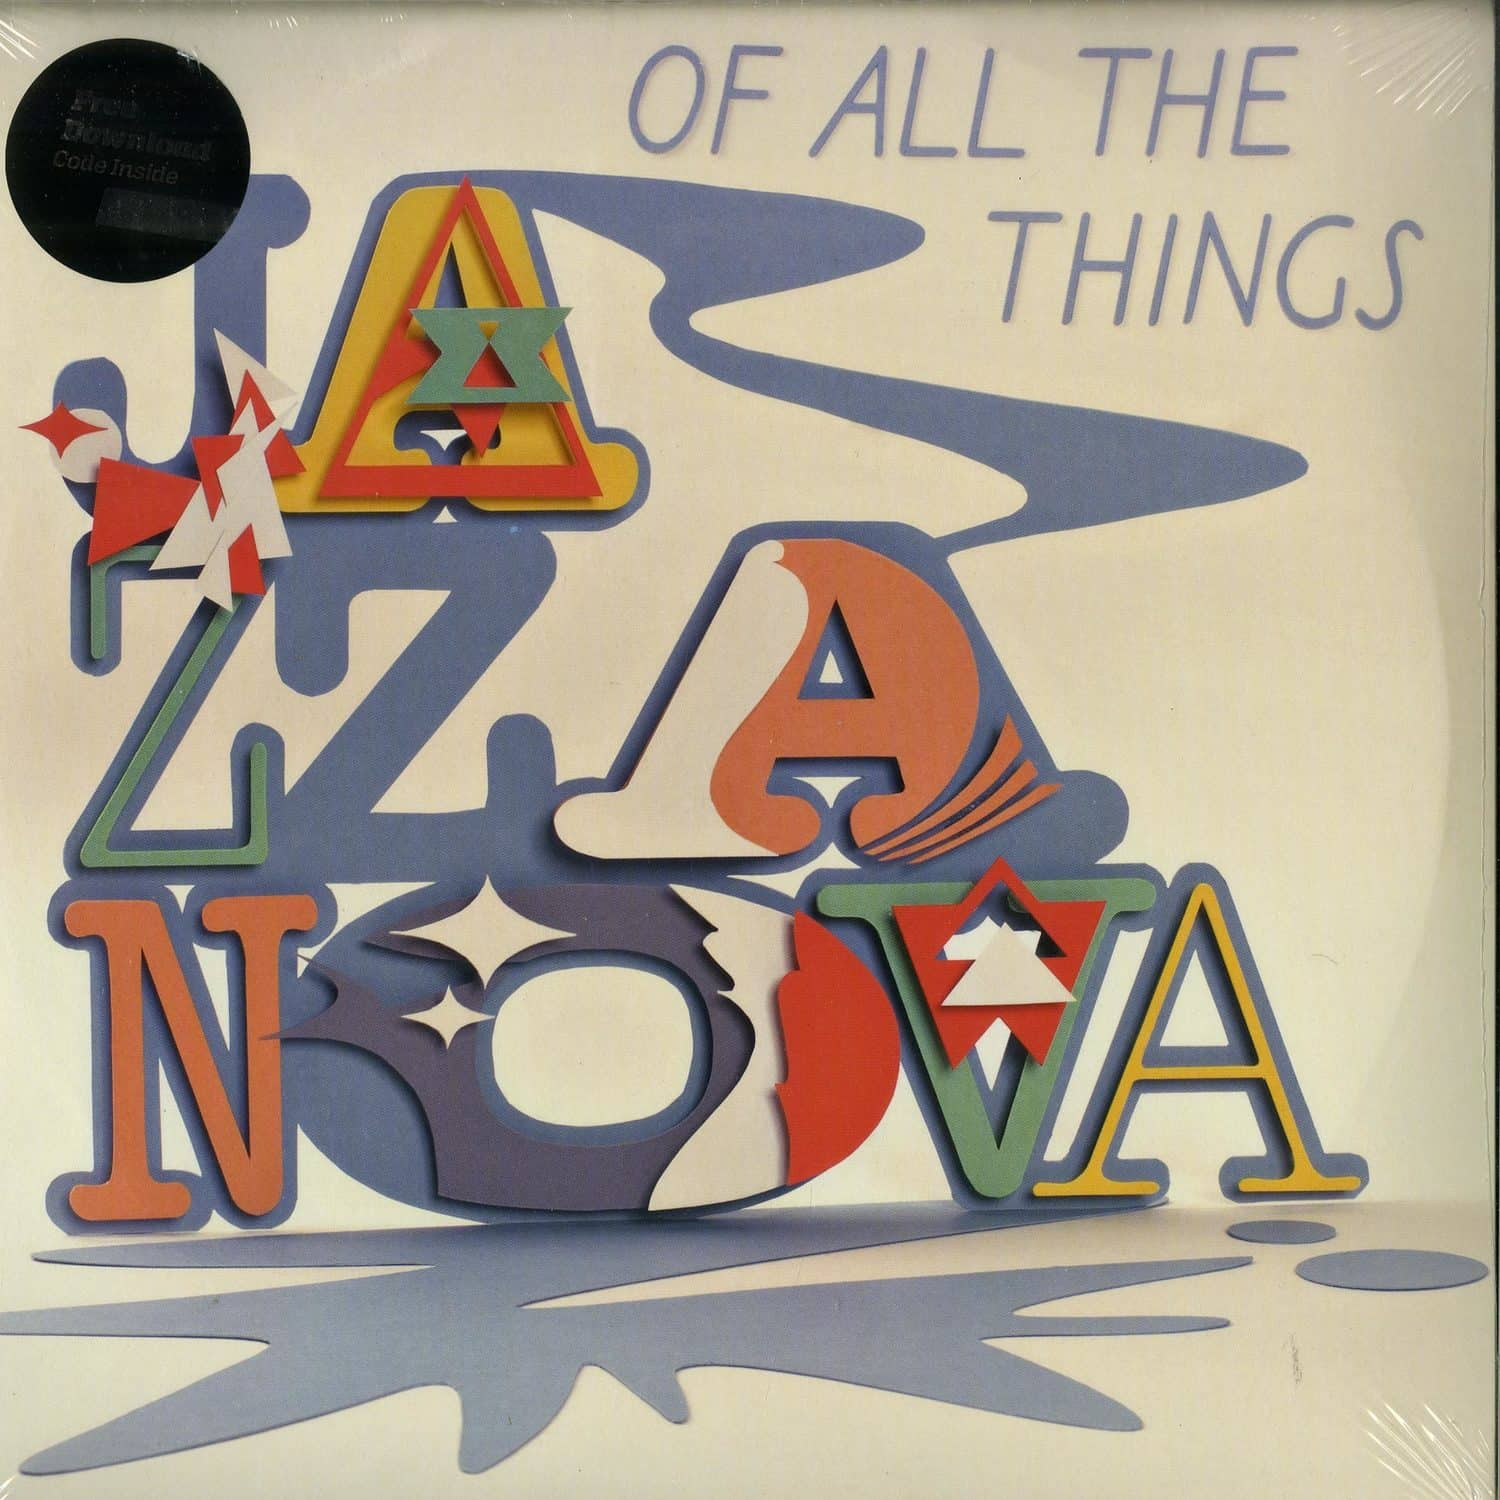 Jazzanova - OF ALL THE THINGS